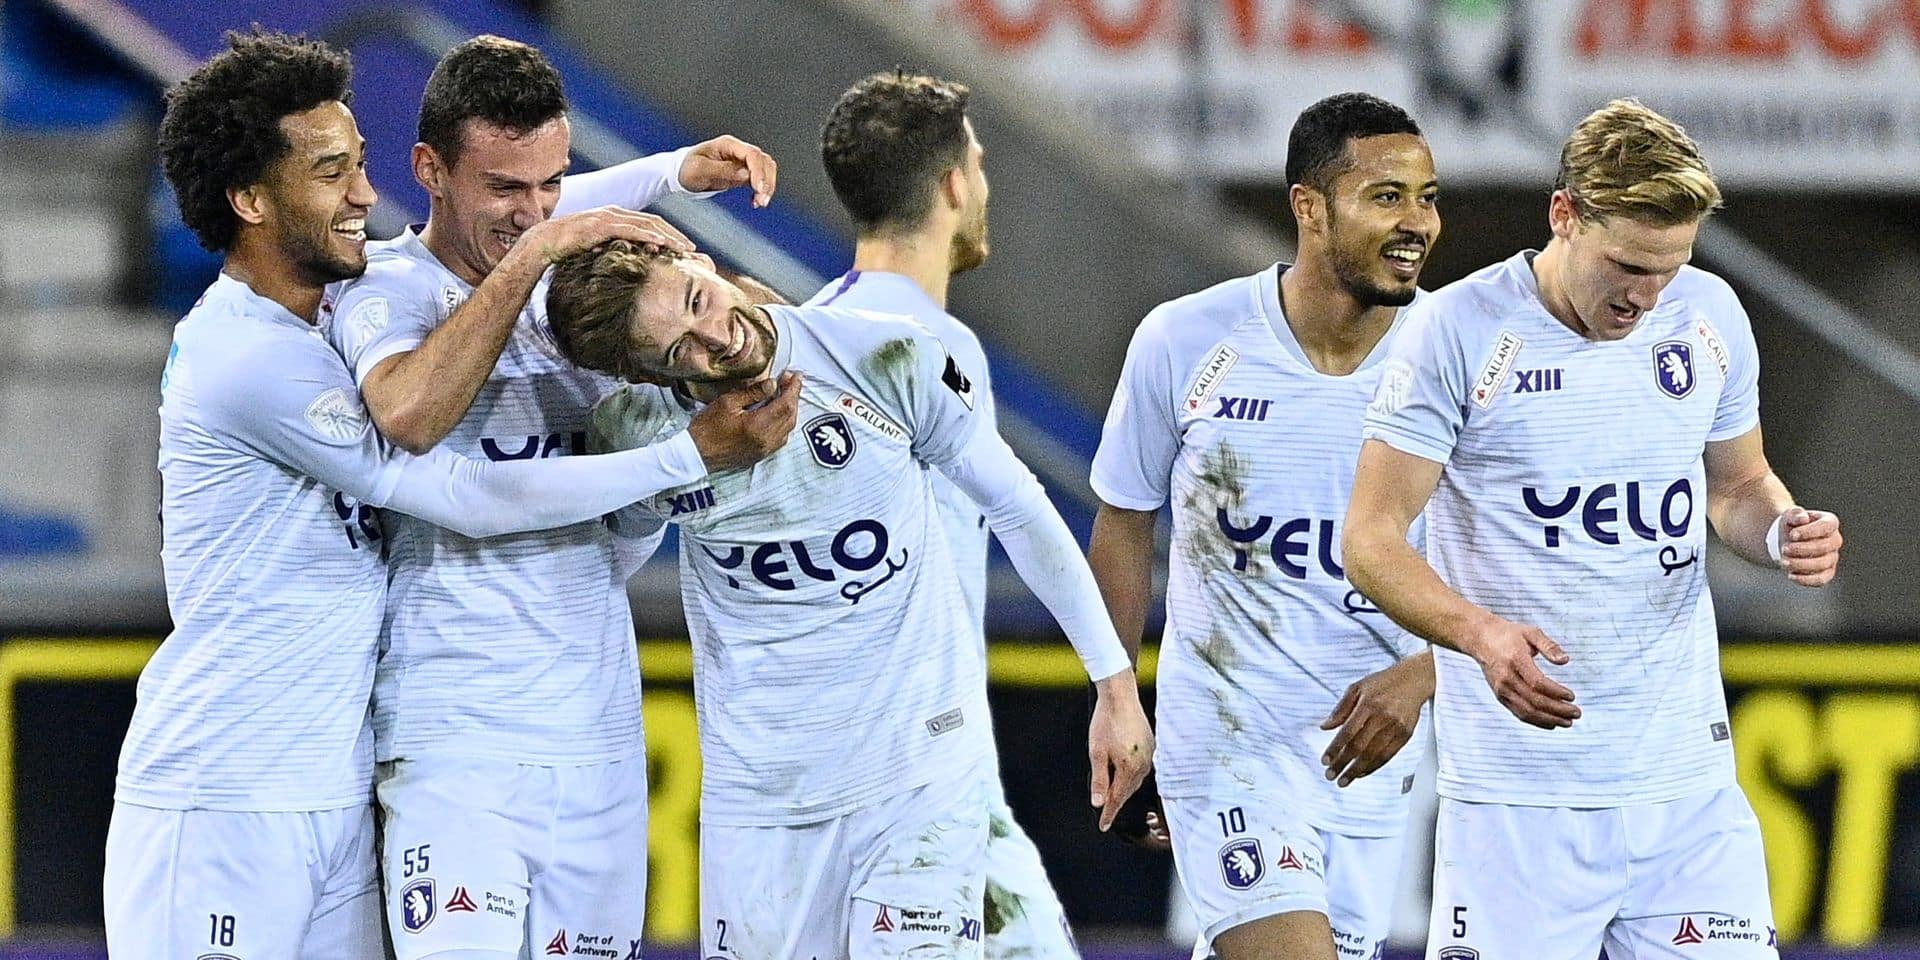 Un but sensationnel et une célébration originale: le défenseur du Beerschot Van den Bergh a régalé face à Genk (VIDEO)